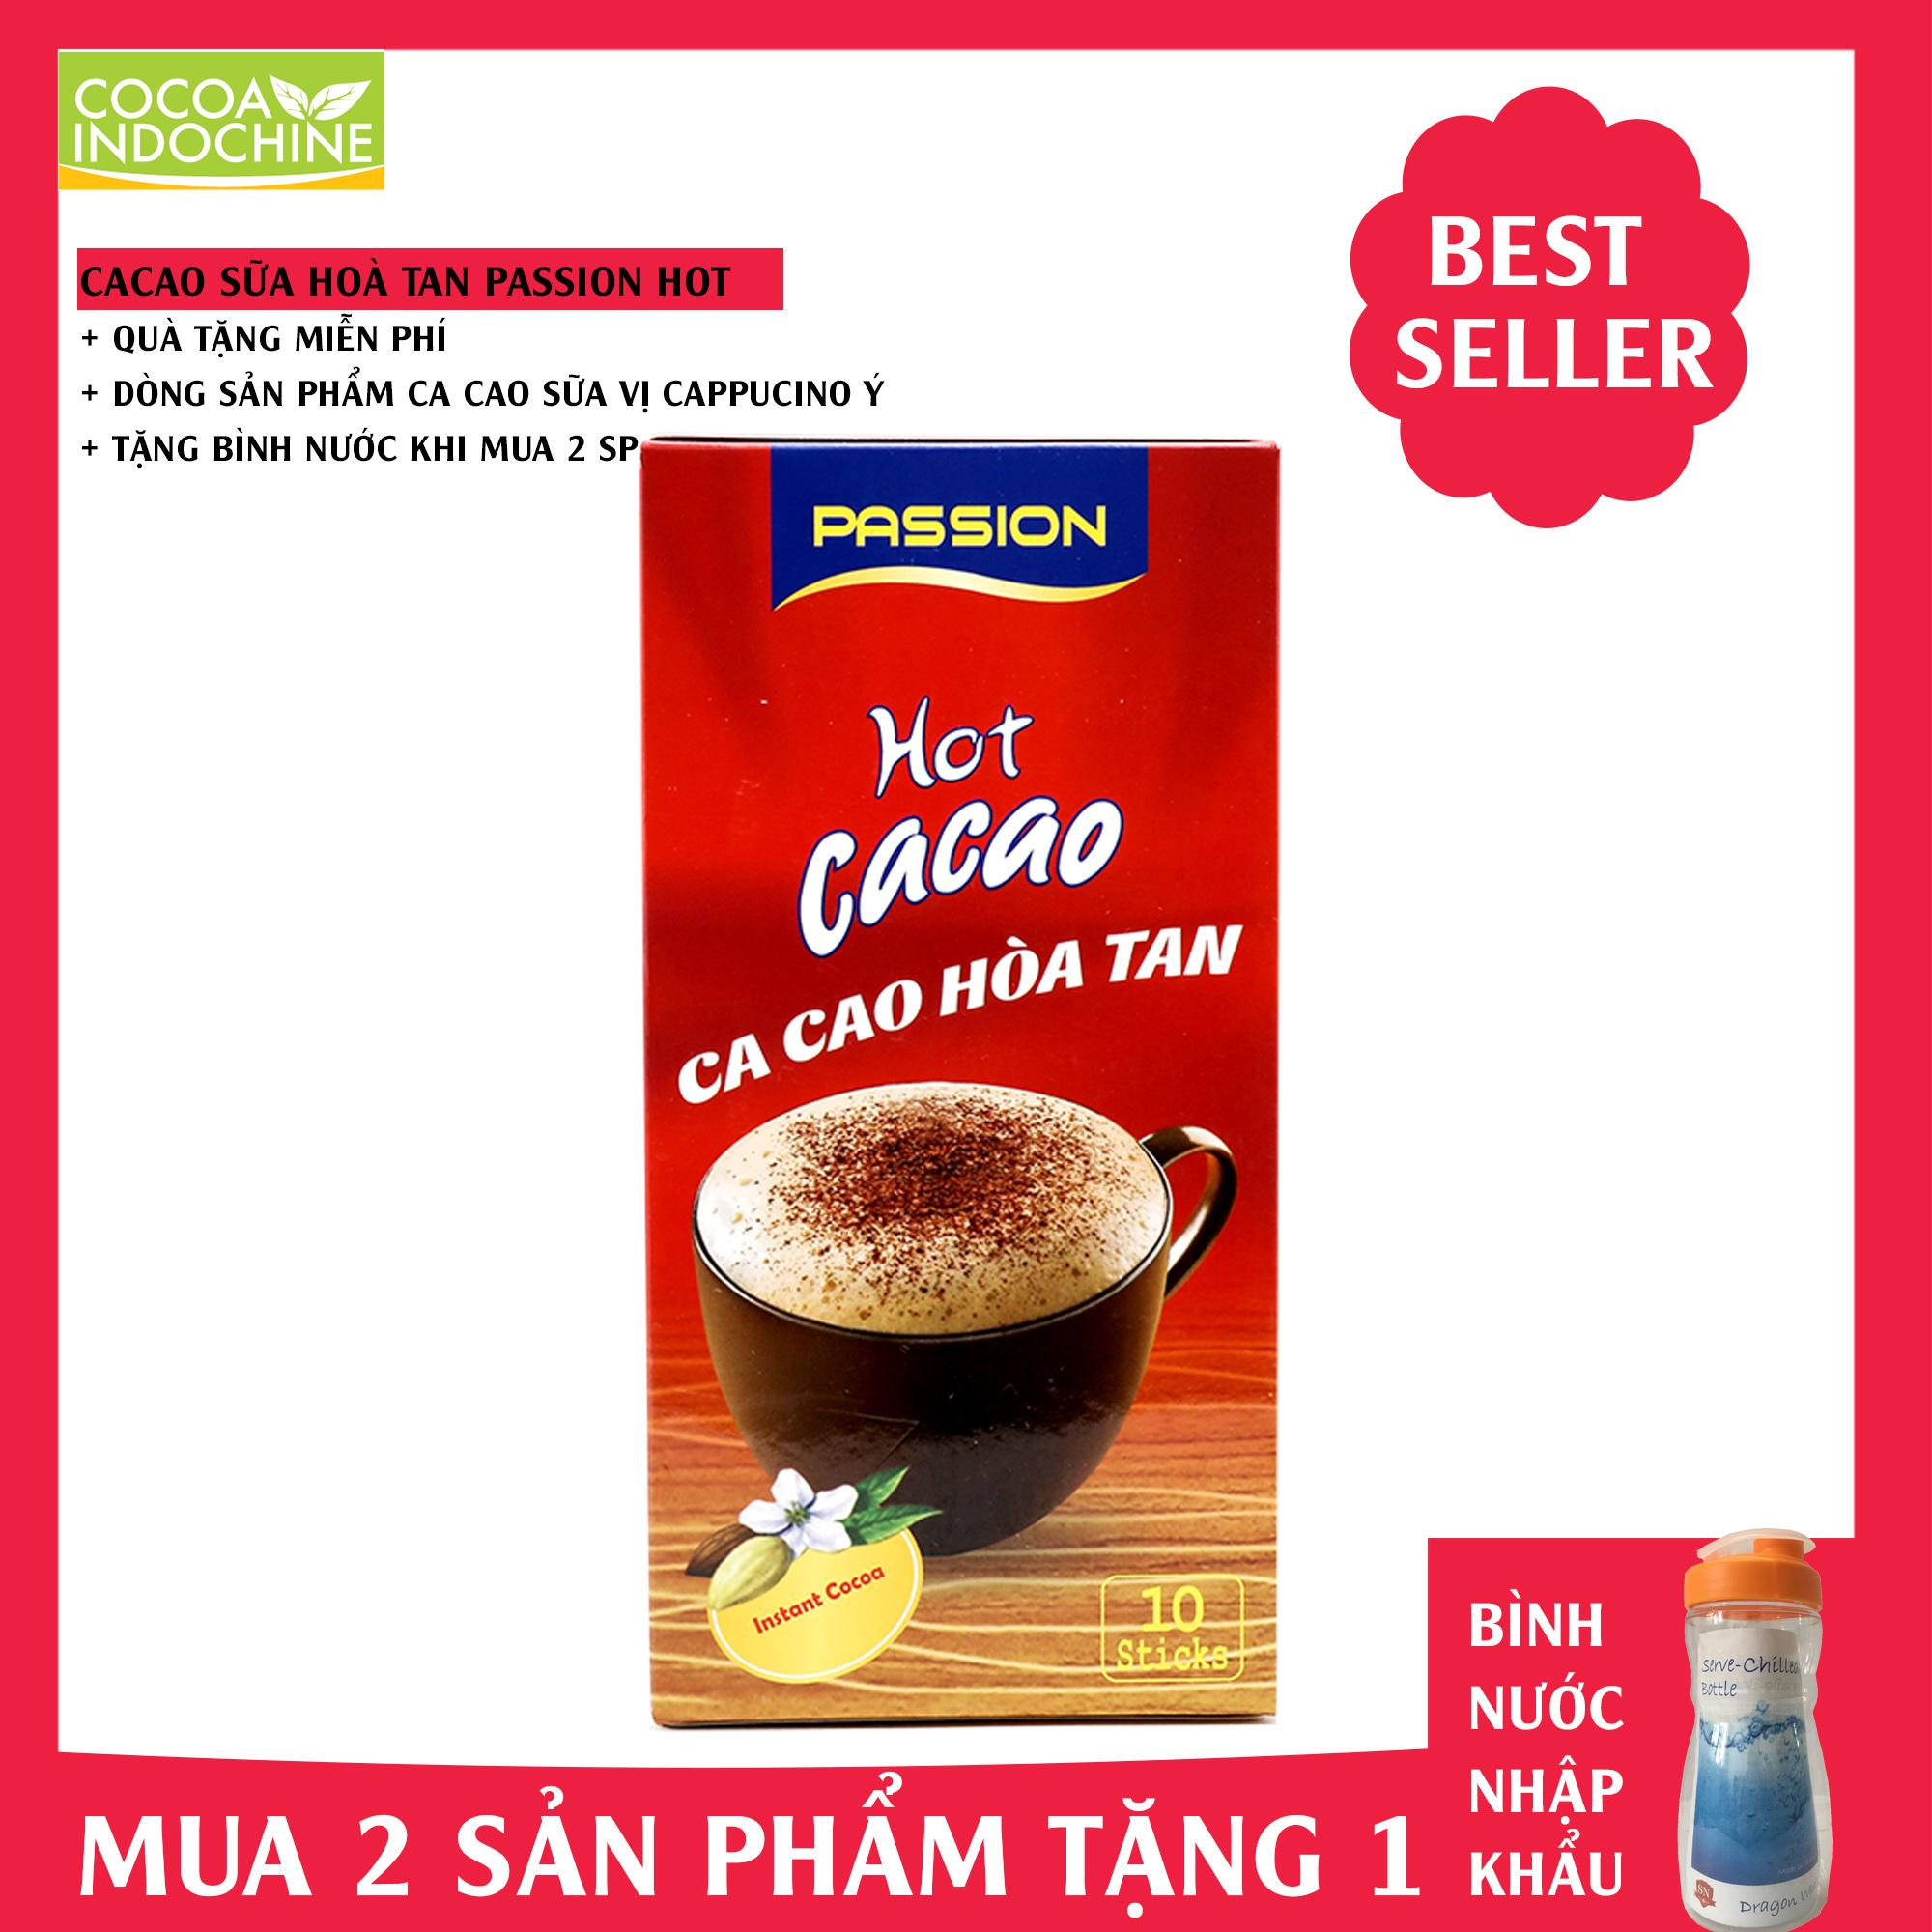 Bột Cacao Passion Hot Cacao - Cocoa Indochine (Hộp 10)